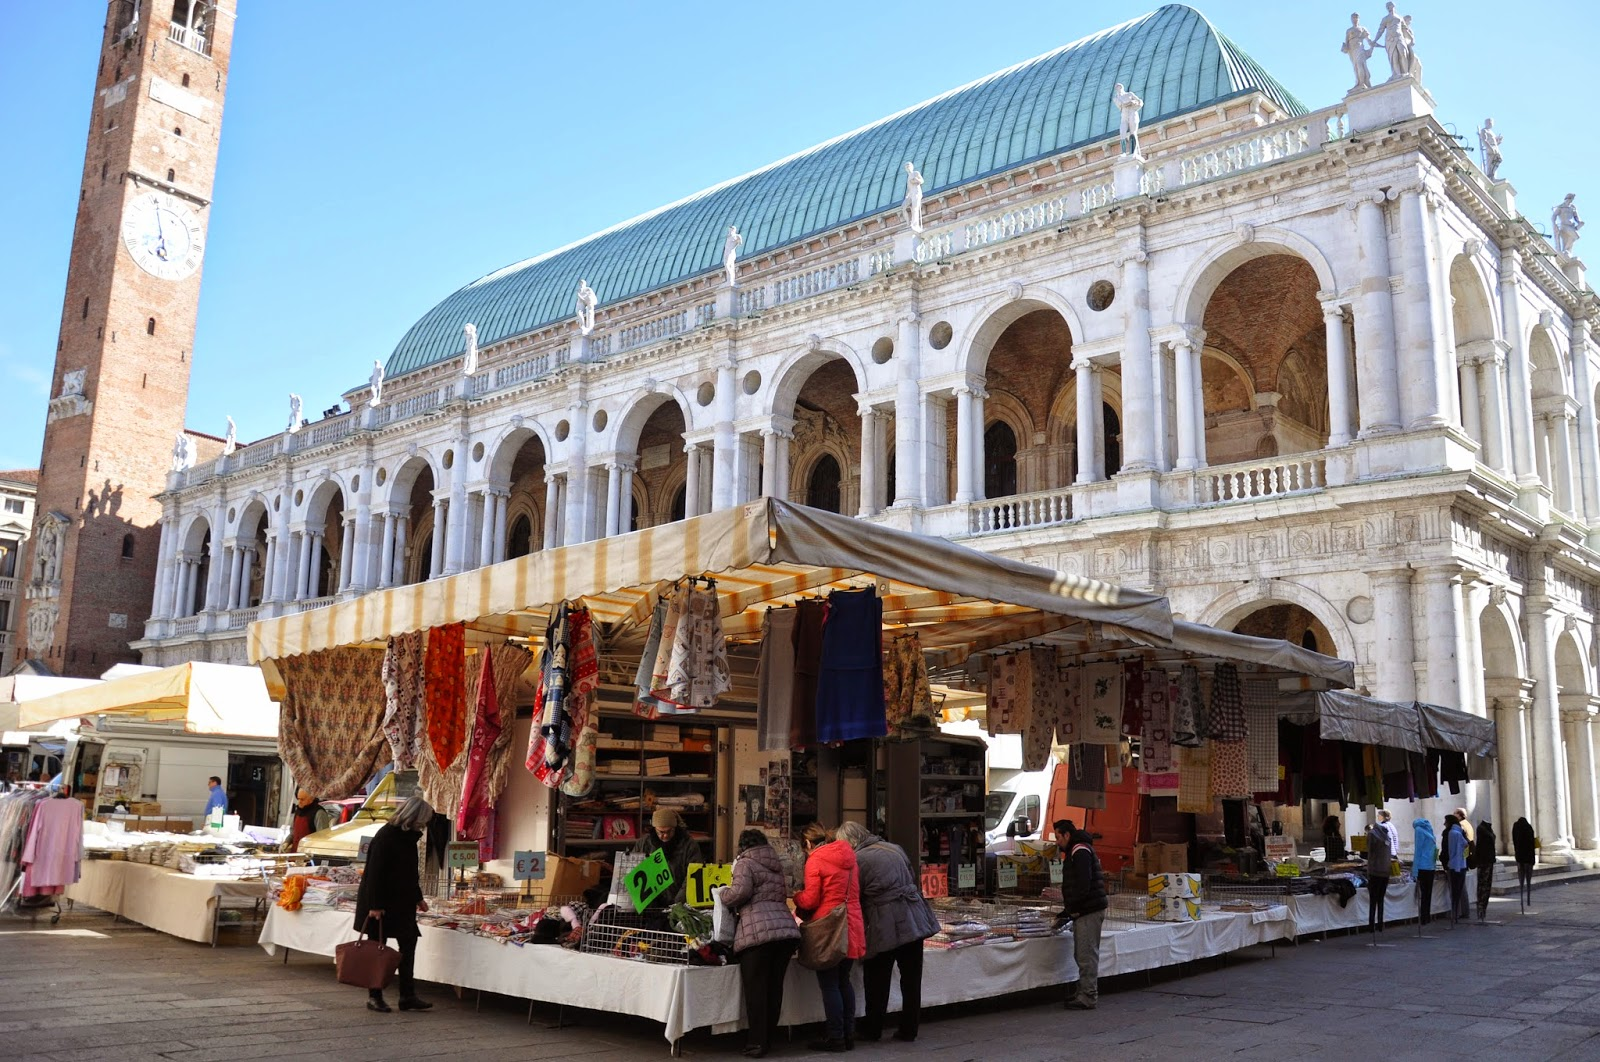 A stall at Piazza dei Signori in front of Palladio's Basilica - Thursday market in Vicenza, Italy